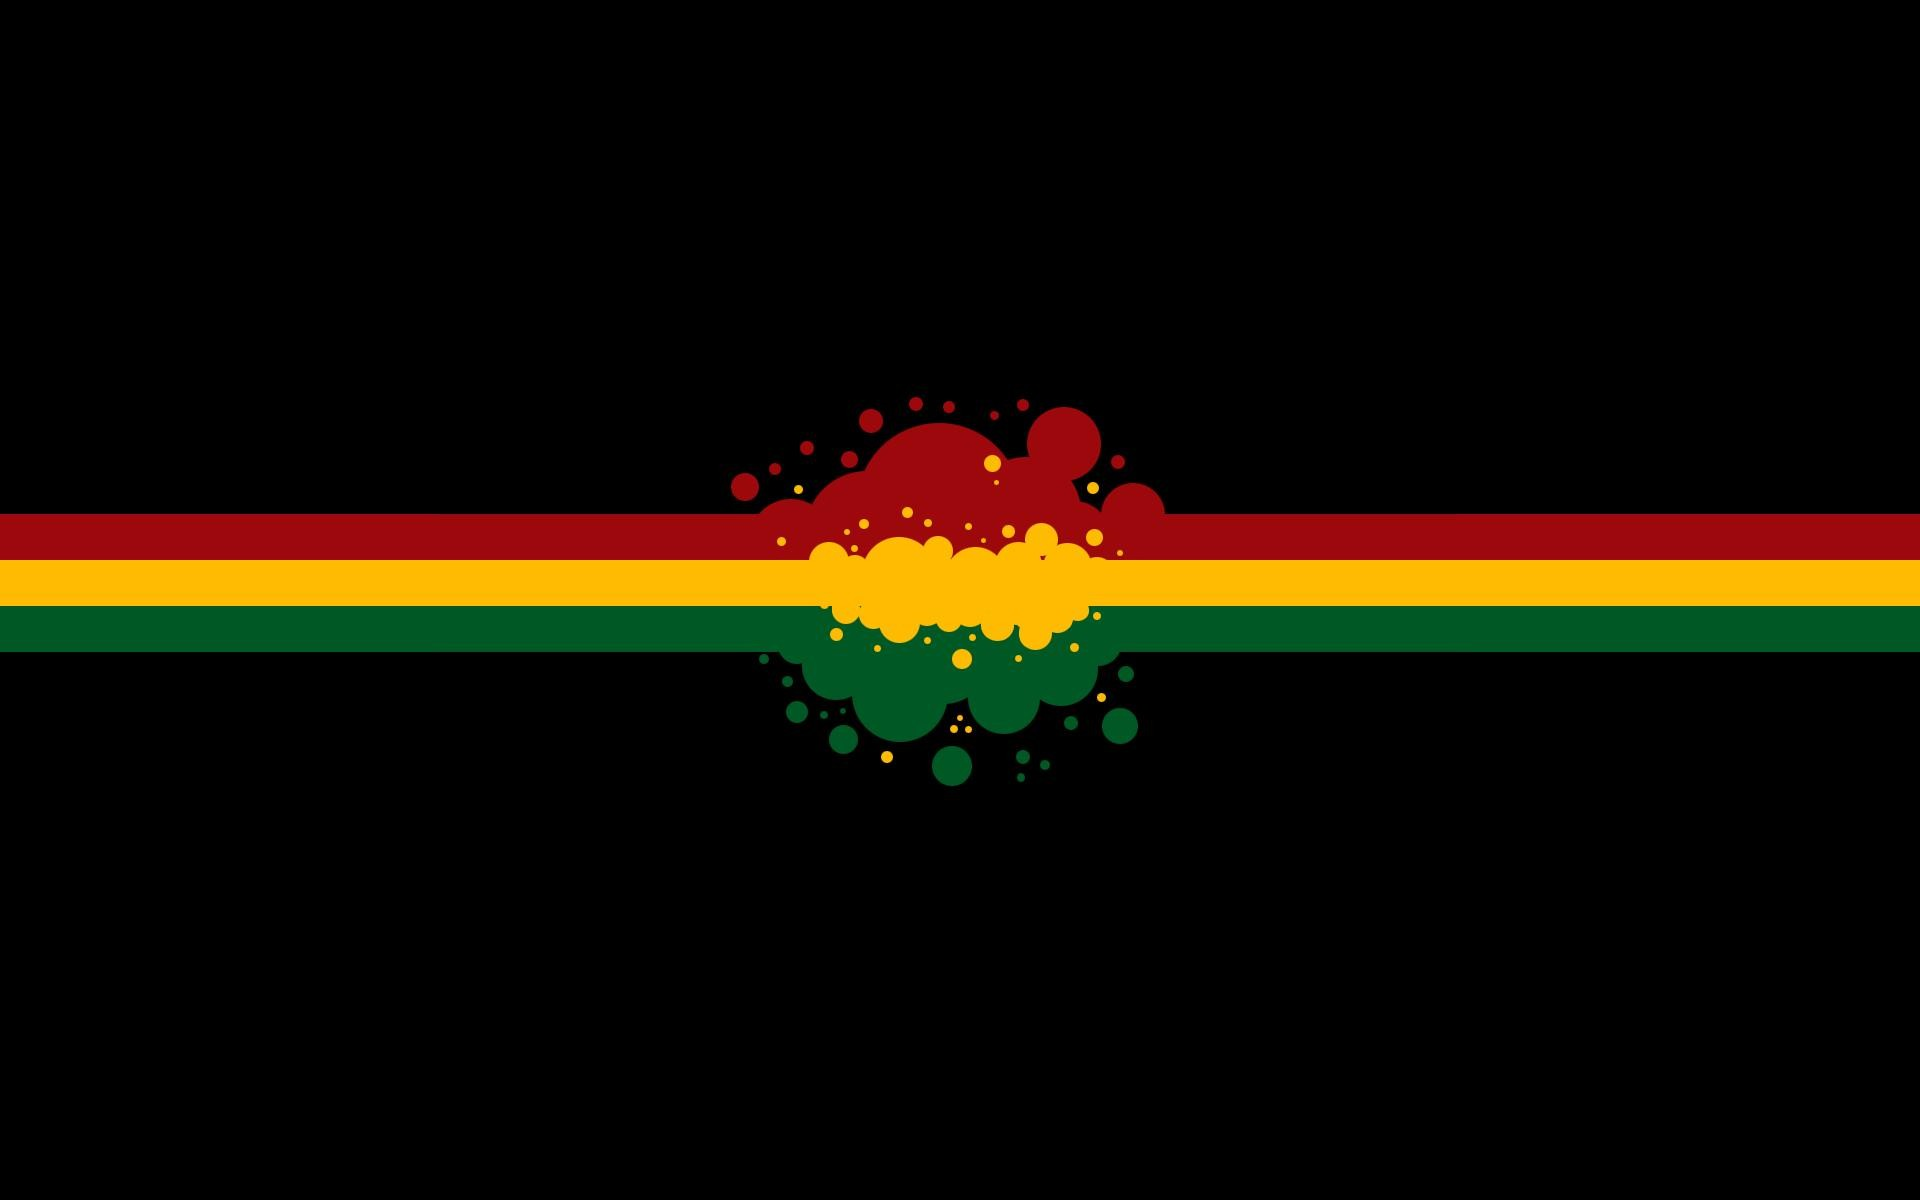 Wallpaper Layouts Backgrounds Reggae